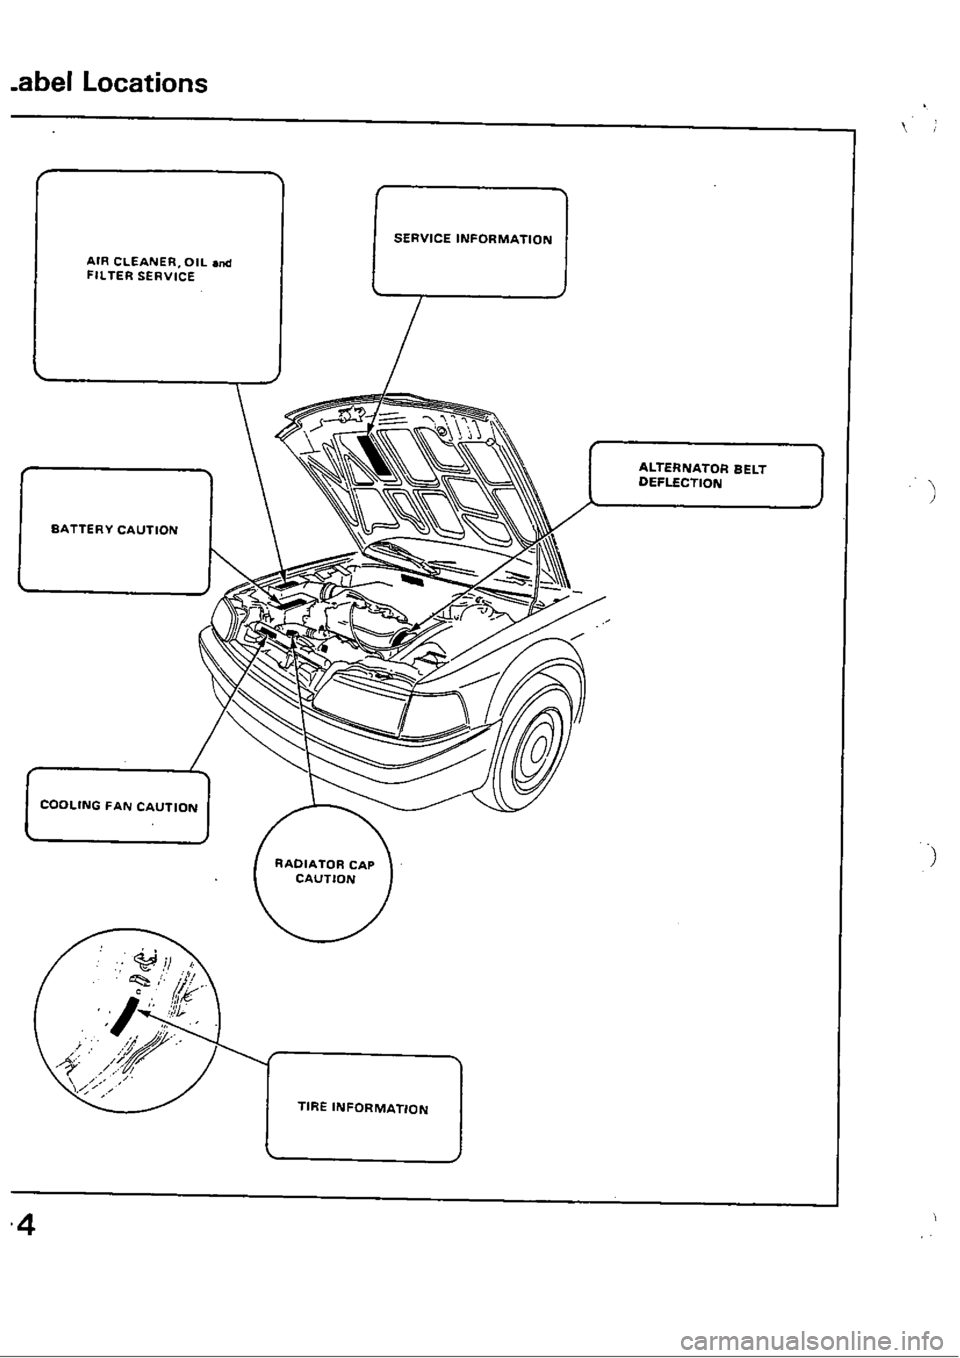 HONDA CIVIC 1990 4.G Workshop Manual